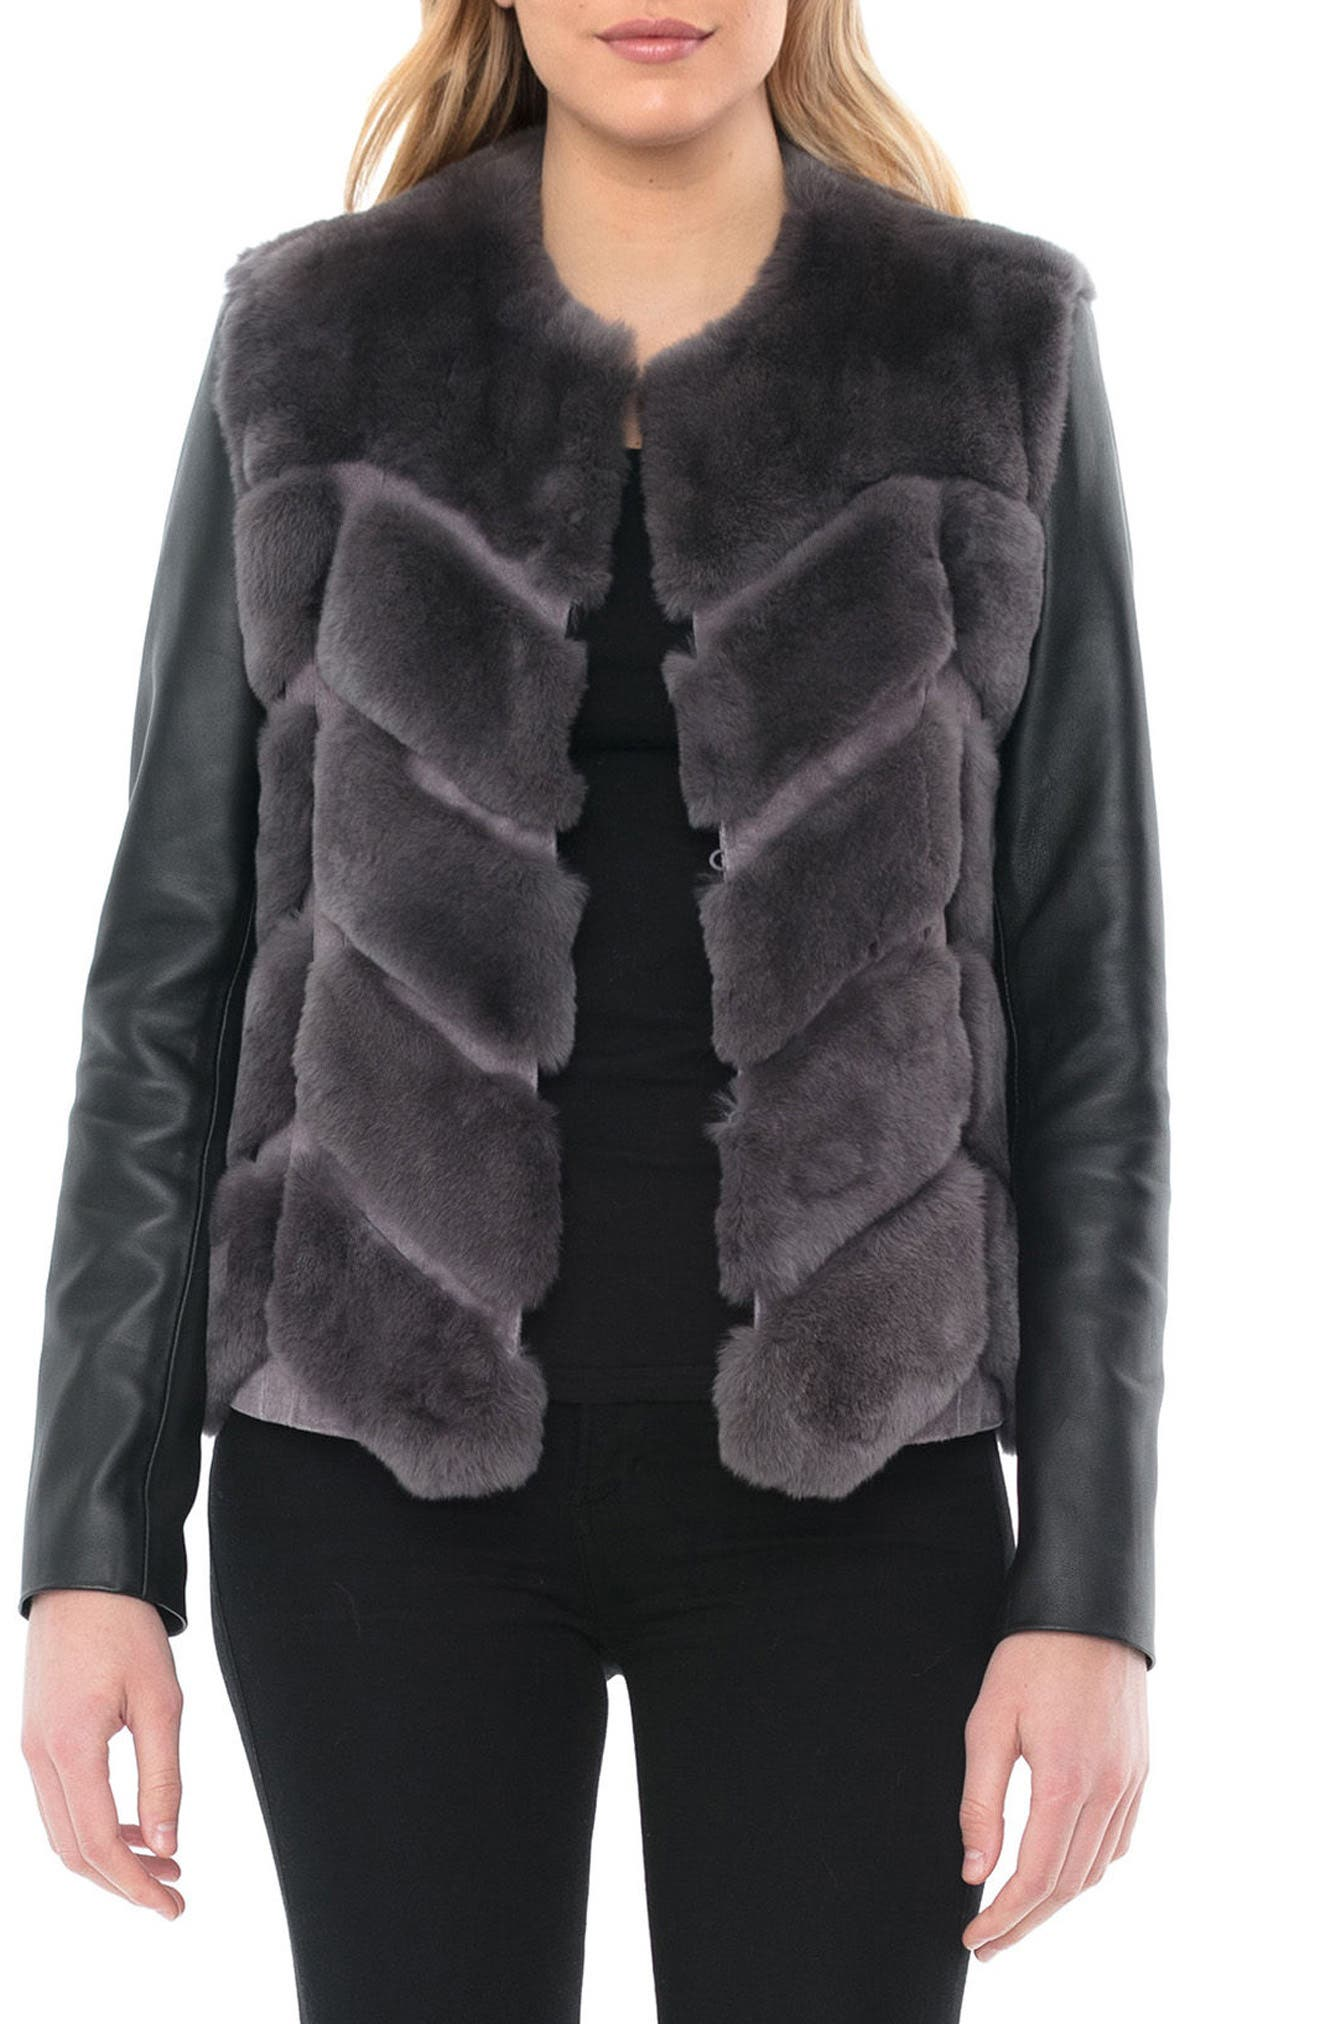 Main Image - Badgley Mischka Genuine Rabbit Fur & Leather Jacket